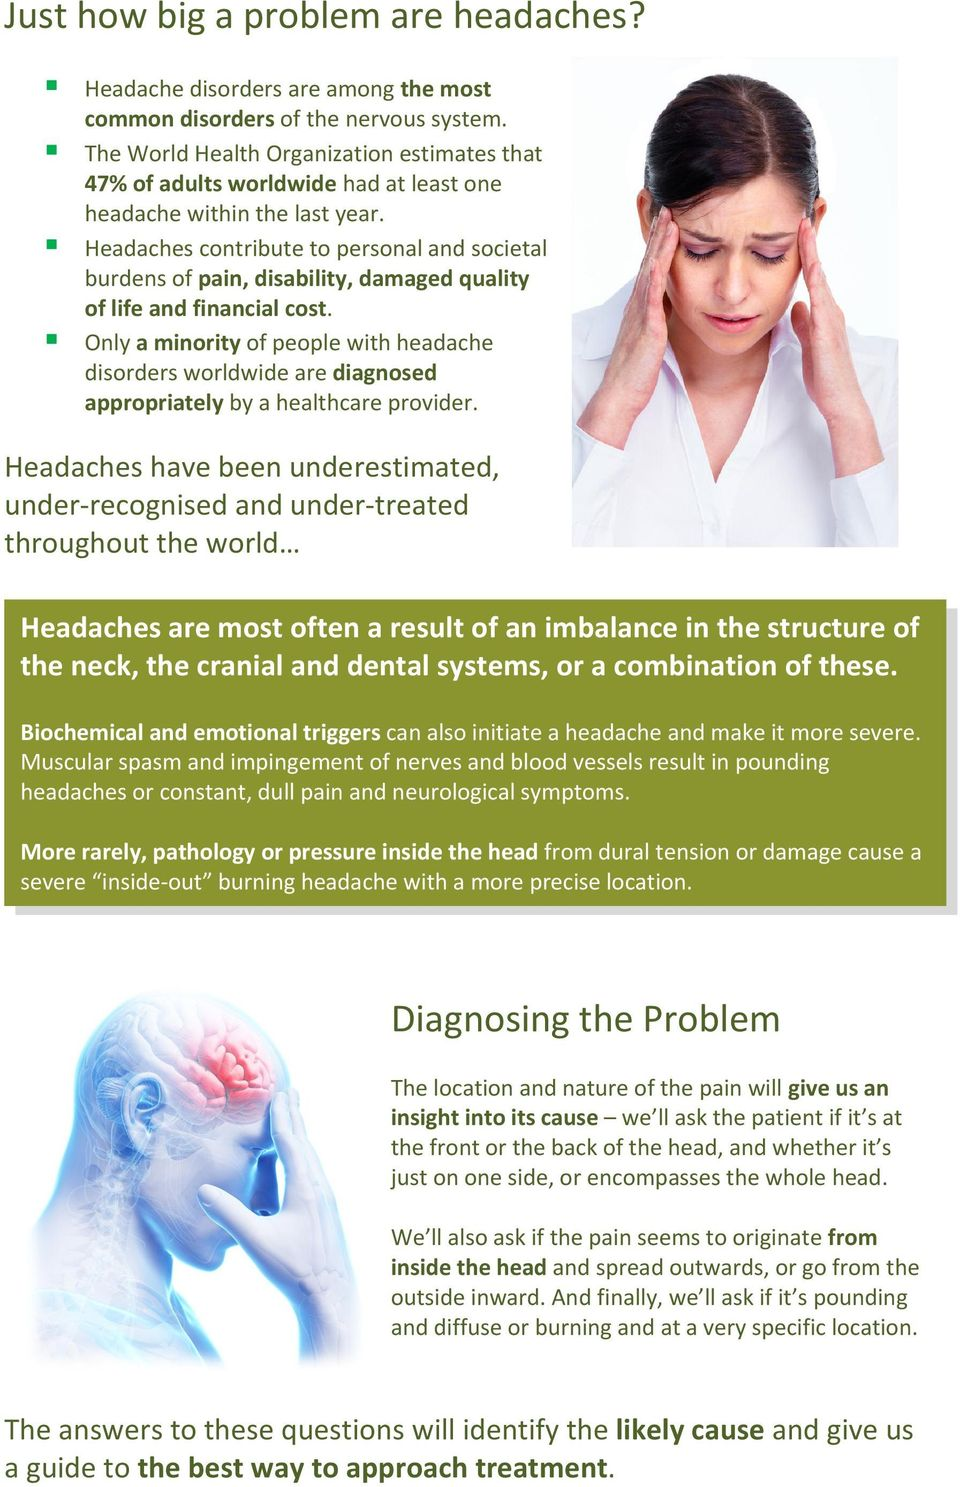 Headaches contribute to personal and societal burdens of pain, disability, damaged quality of life and financial cost.